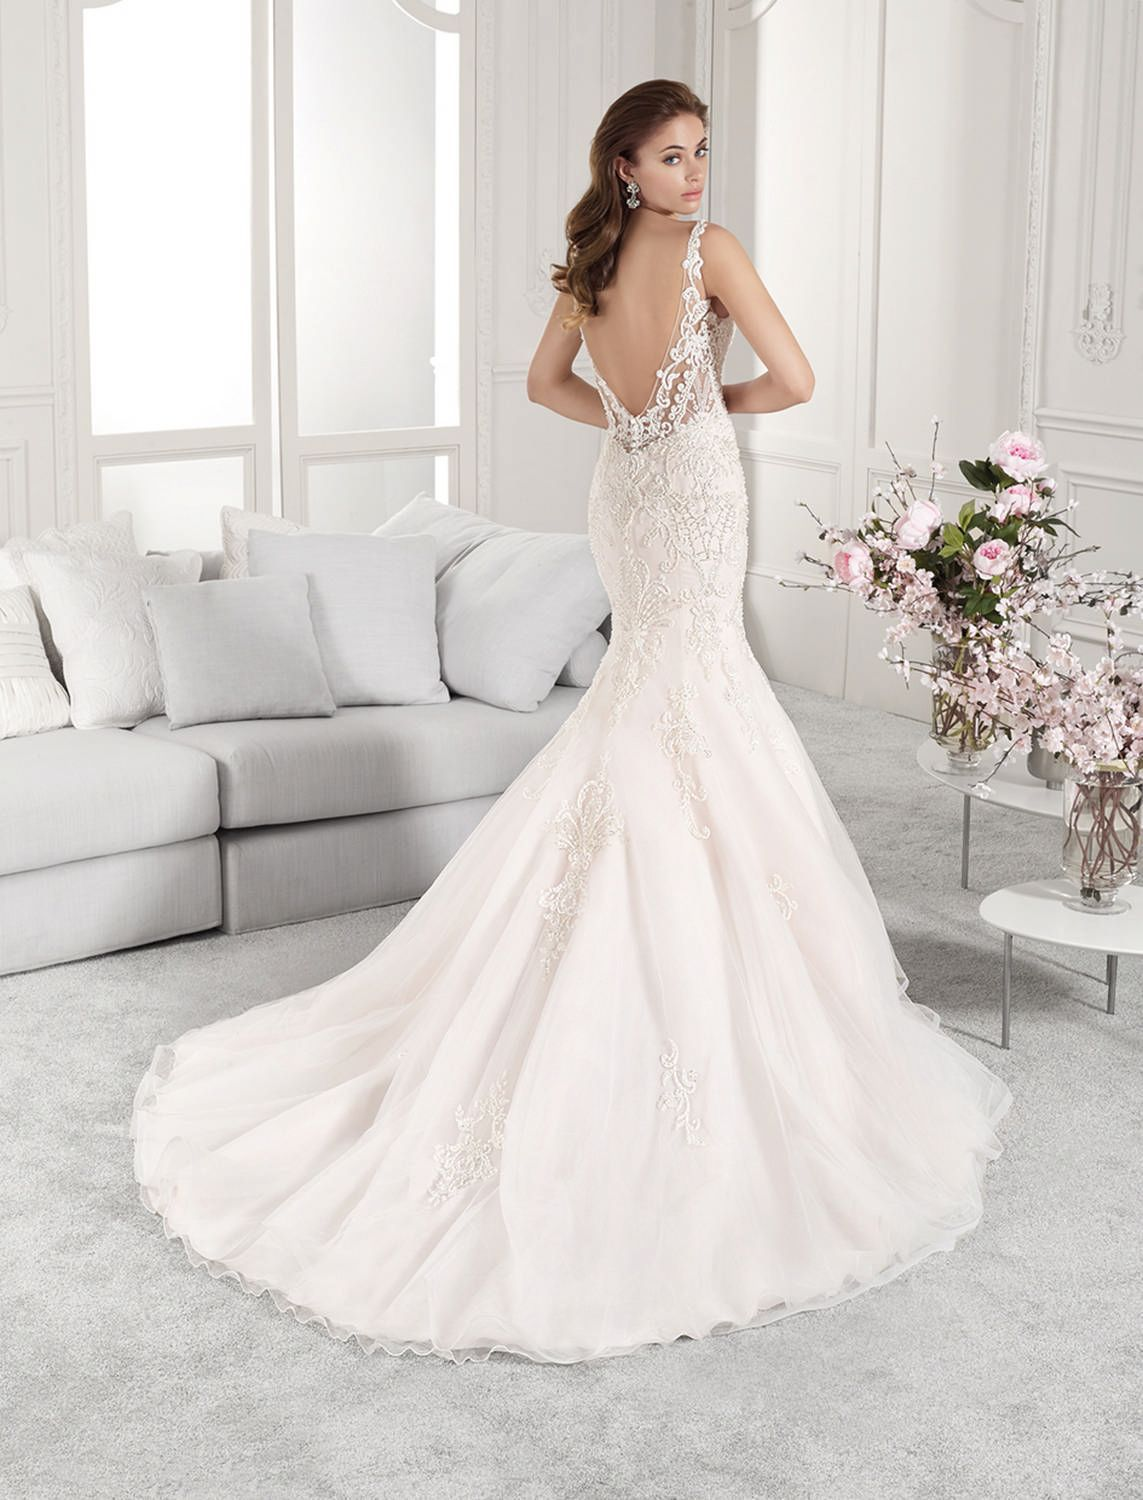 Demetrios Wedding Dress Style 849 Weddingdresses Wedding